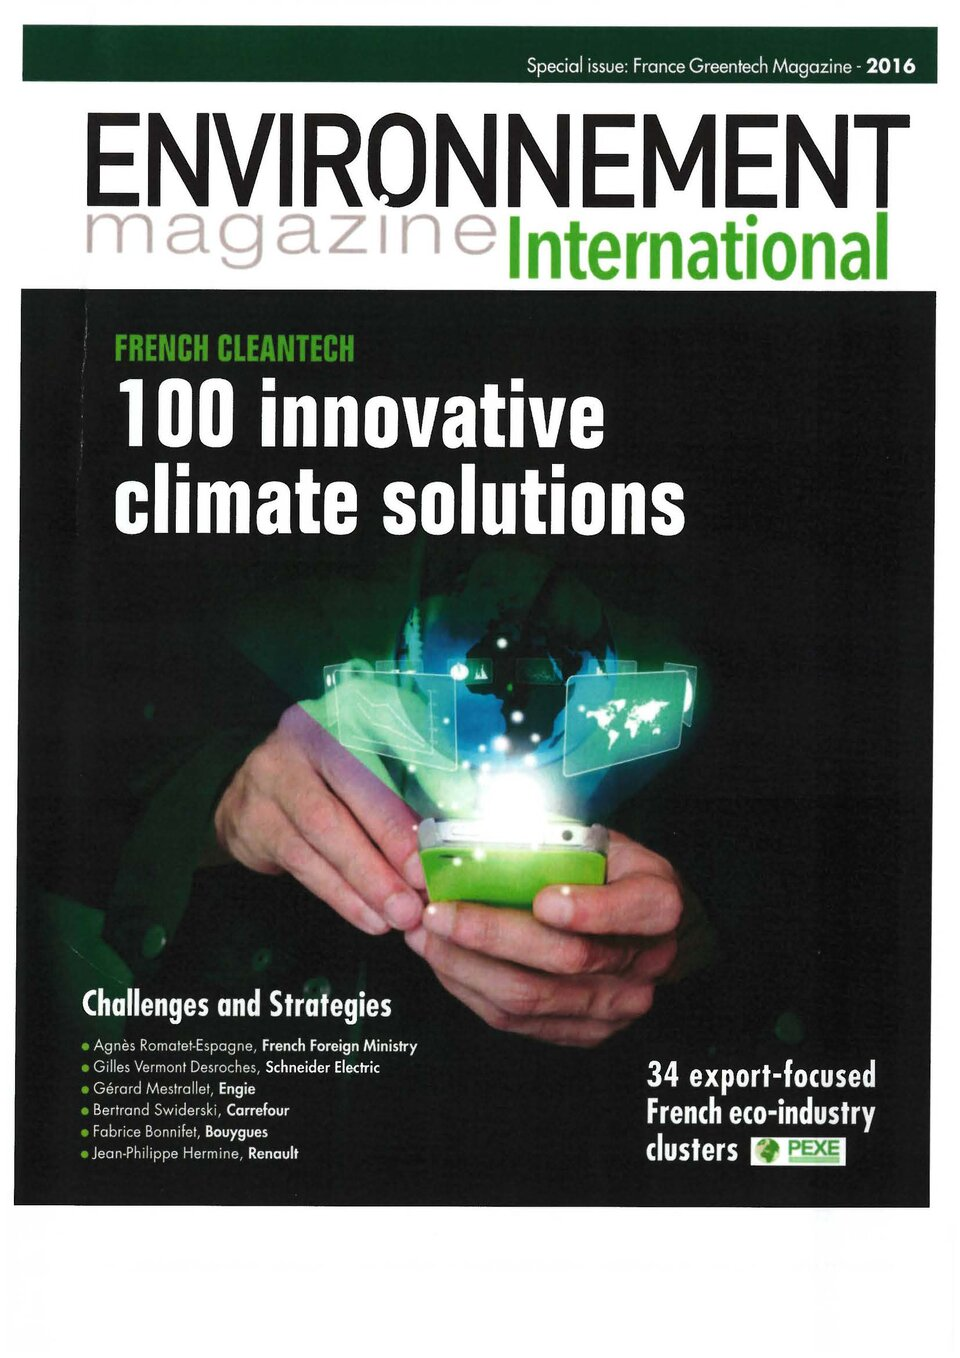 Environnement Magazine International